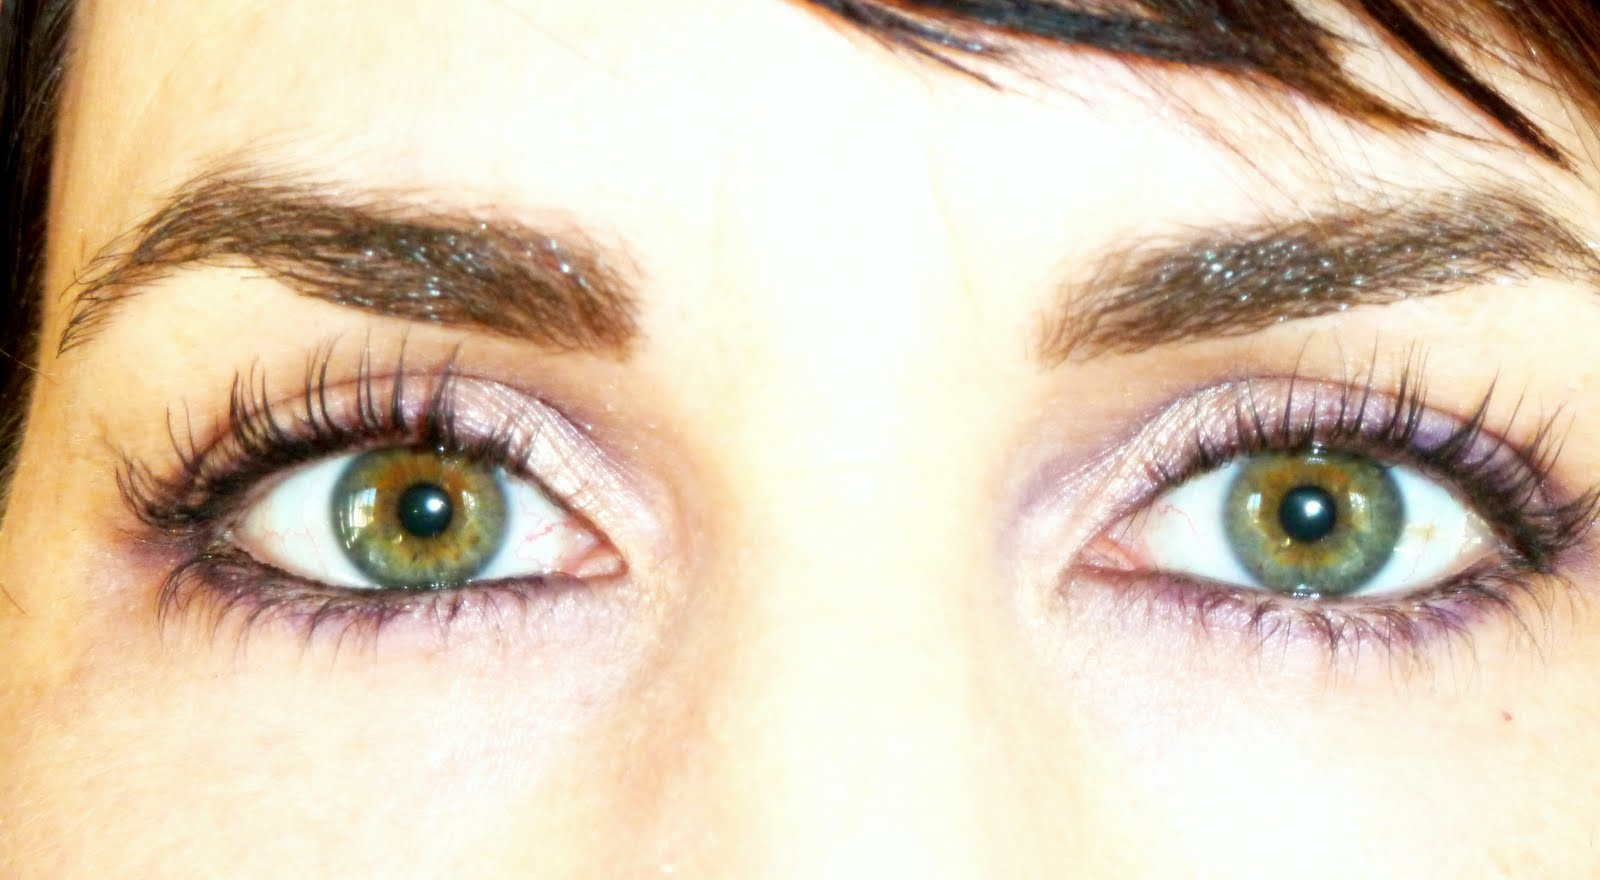 Pin Hazel Green Eyes Meaning on Pinterest